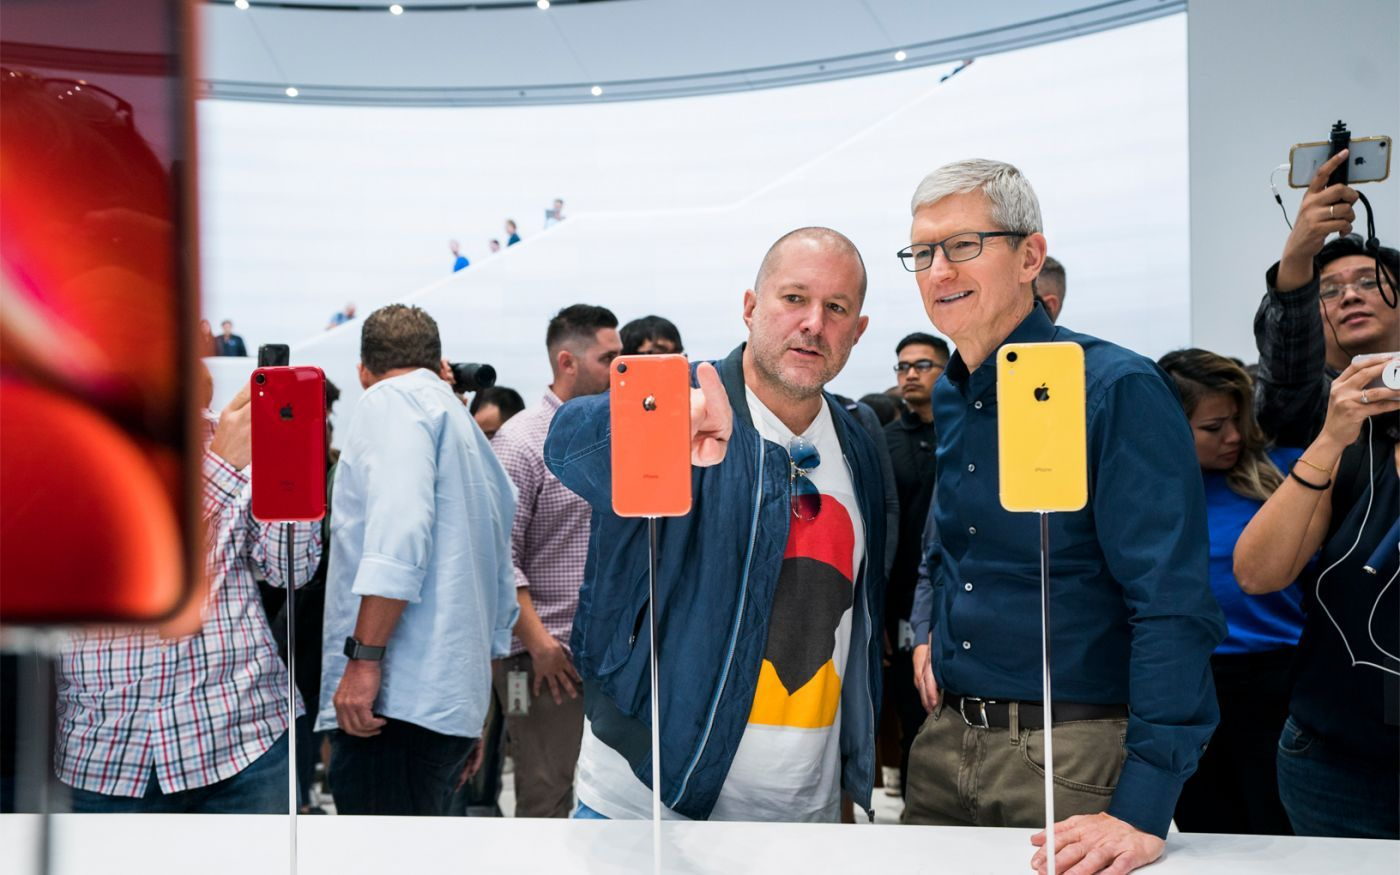 Apple-update-tim-cook-jonathan-ive-062619_big.jpg.large_2x